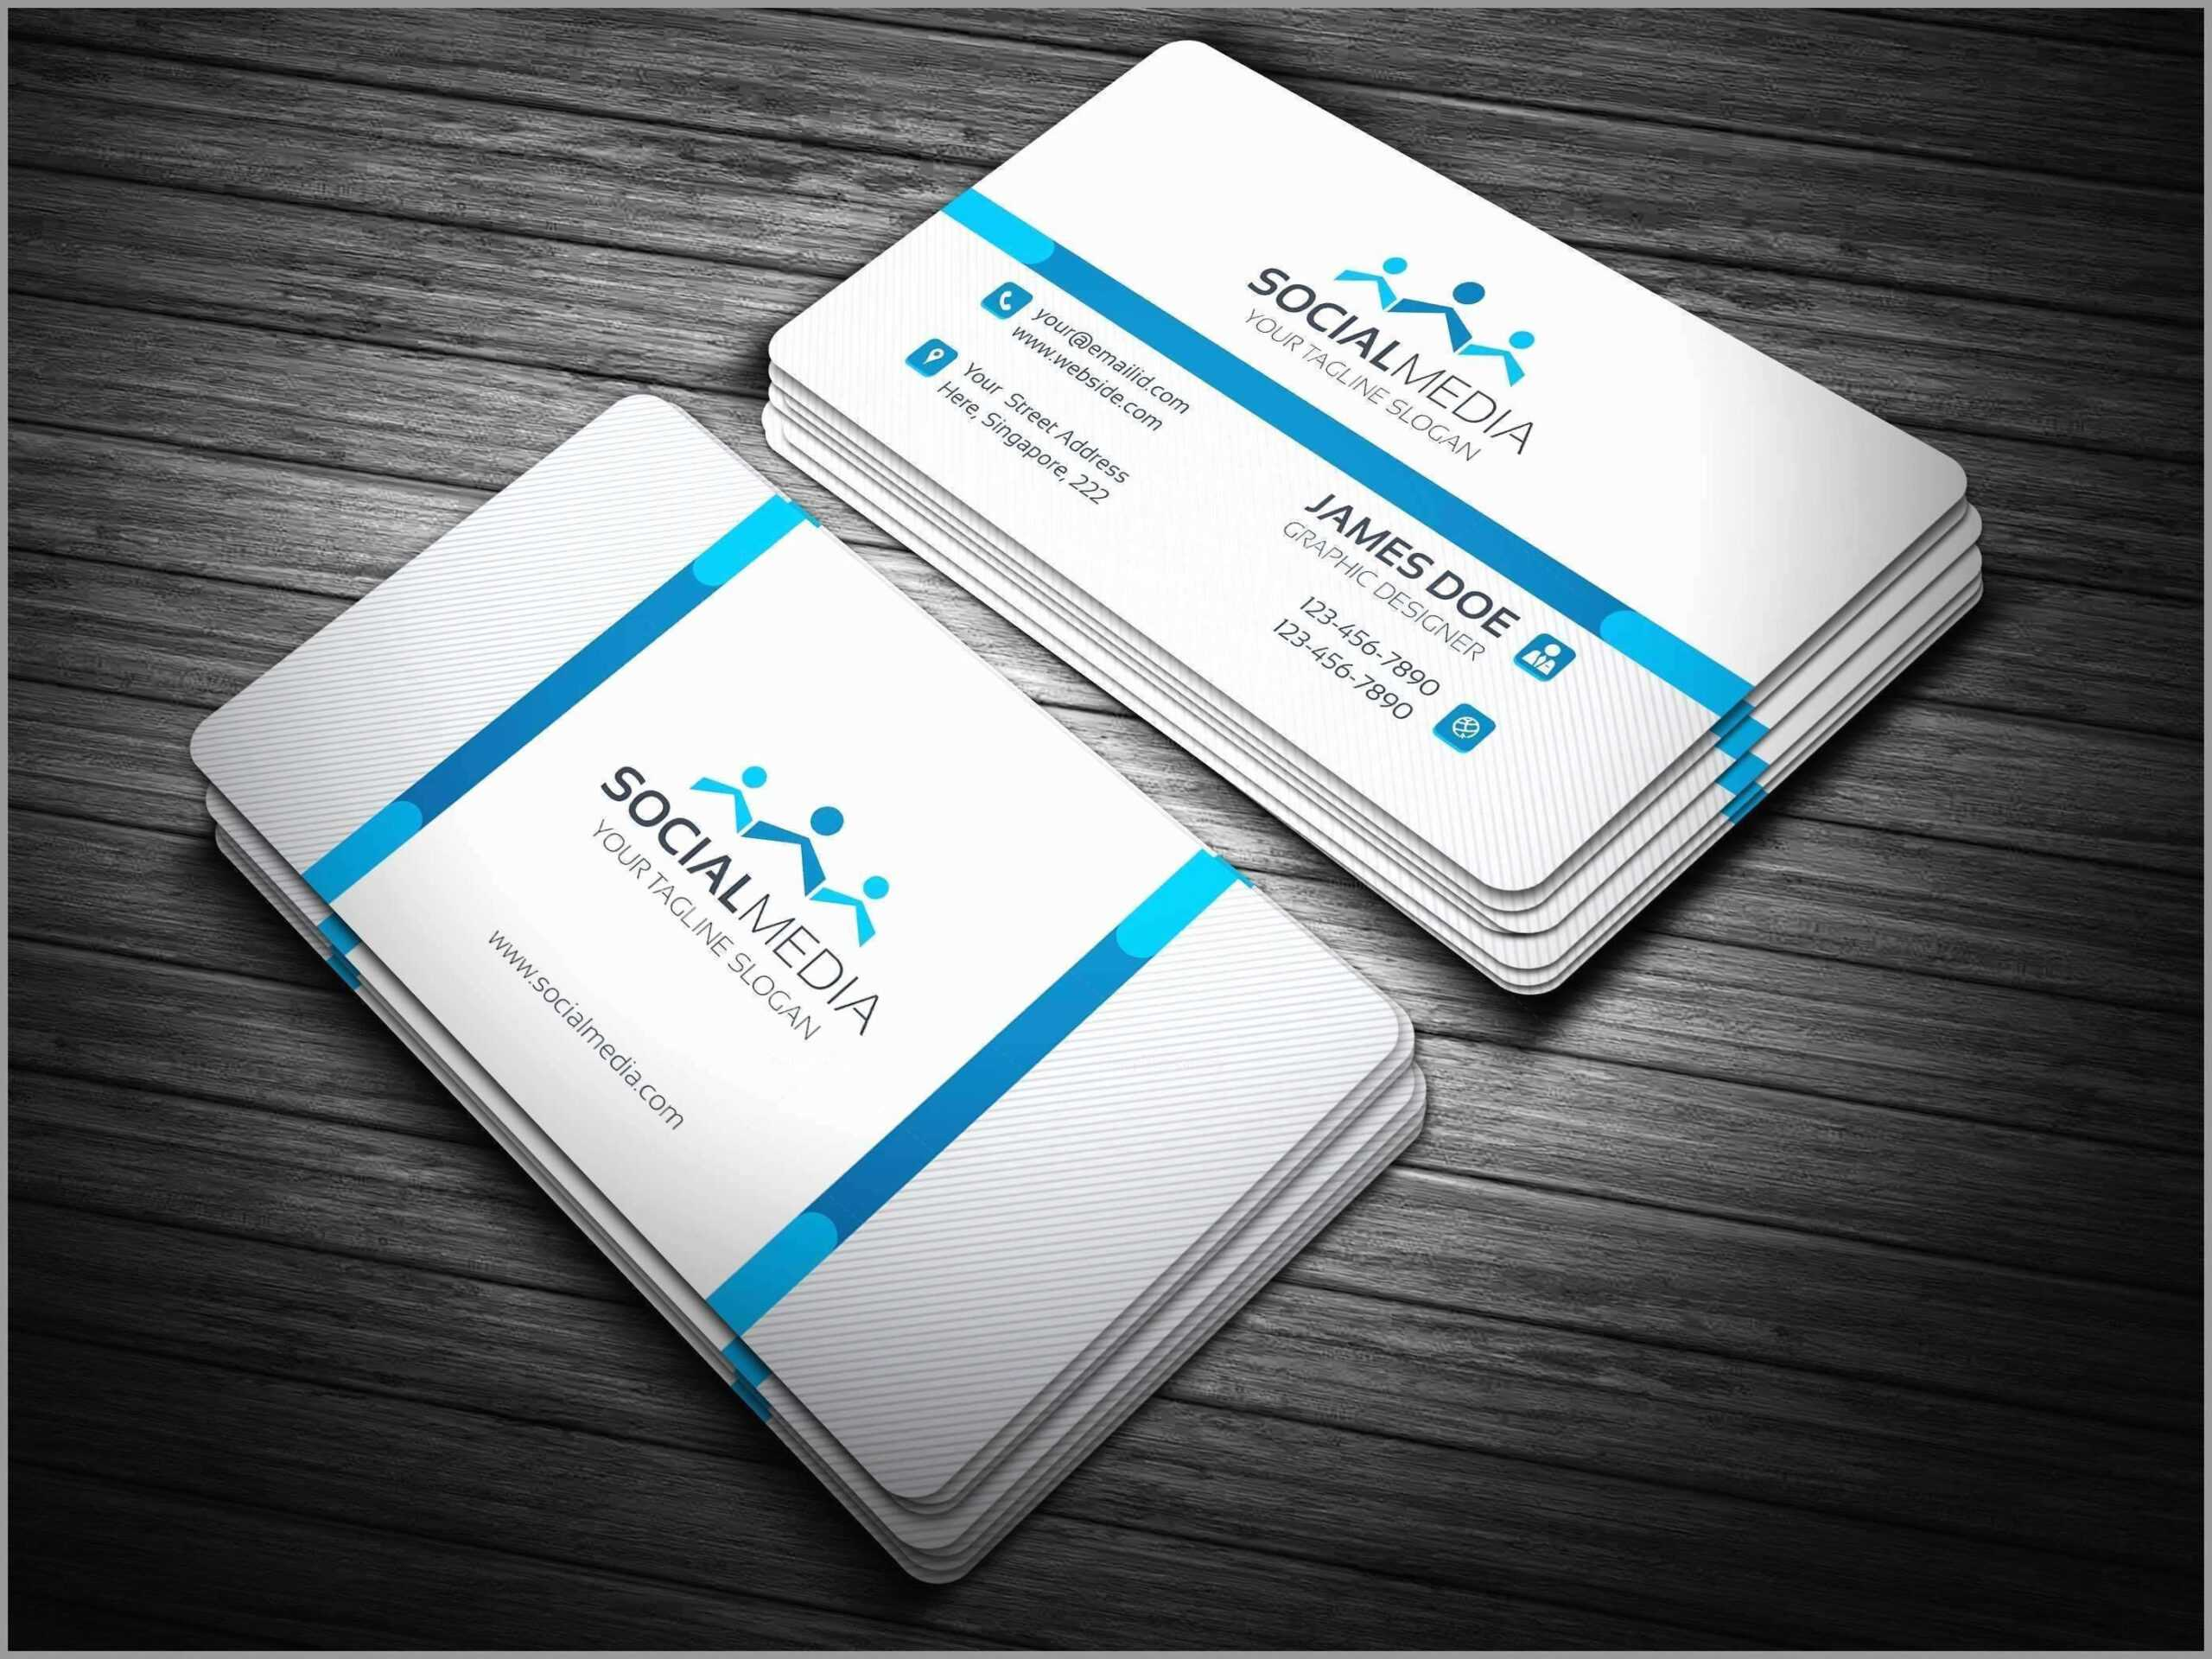 Esthetician Business Card Templates - Apocalomegaproductions Throughout Kinkos Business Card Template